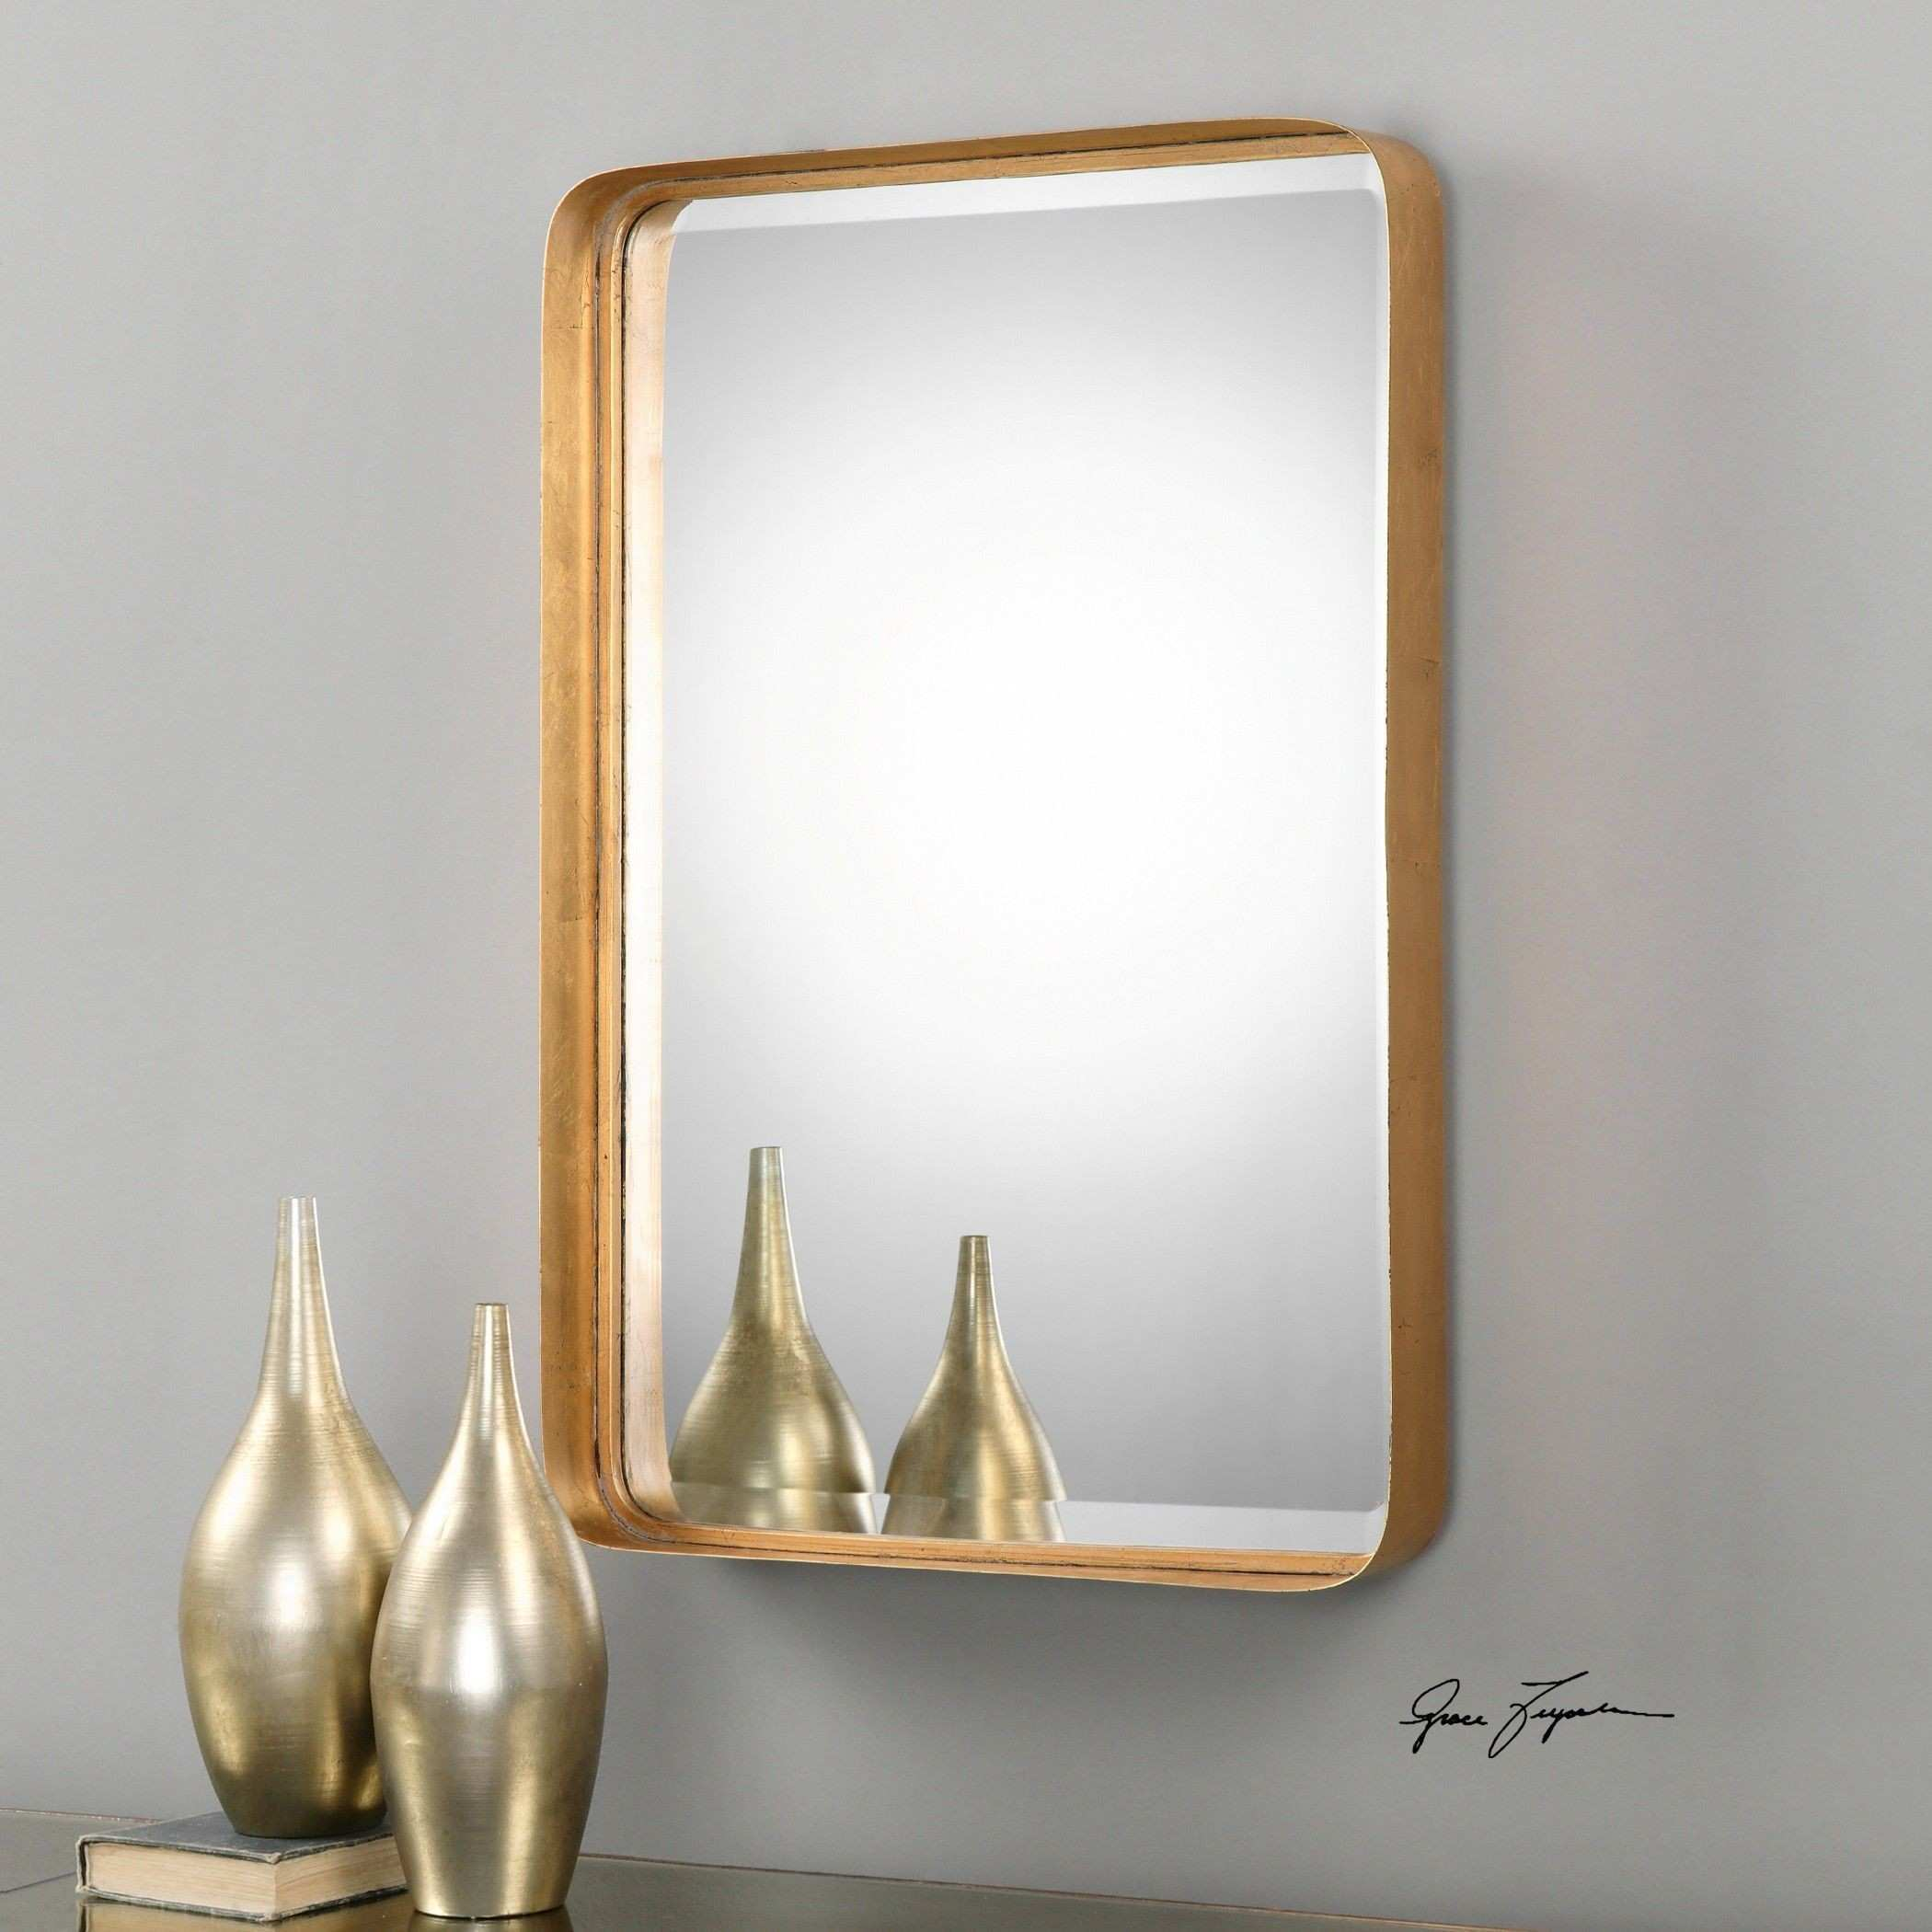 The Well Appointed House Crofton Gold Leaf Mirror